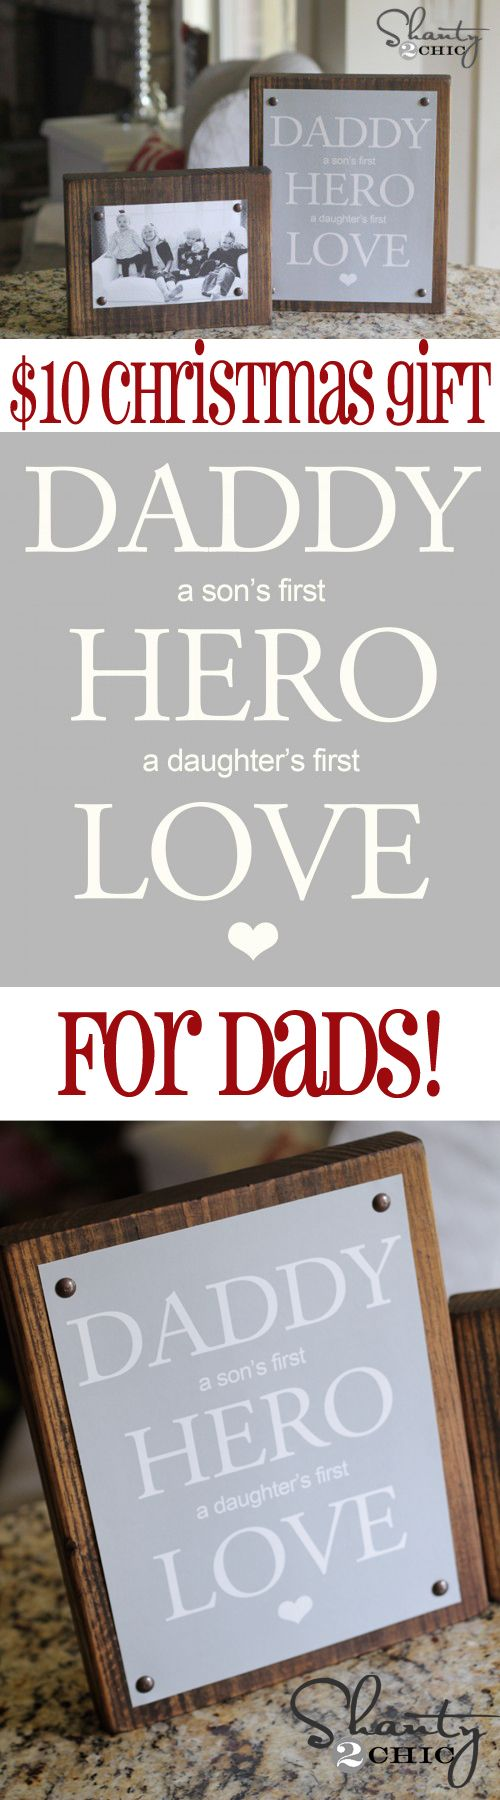 Easy DIY #Christmas Gift for Dad from Shanty-2-Chic.com // Great Photo gift for Dads!! #12daysofchristmas